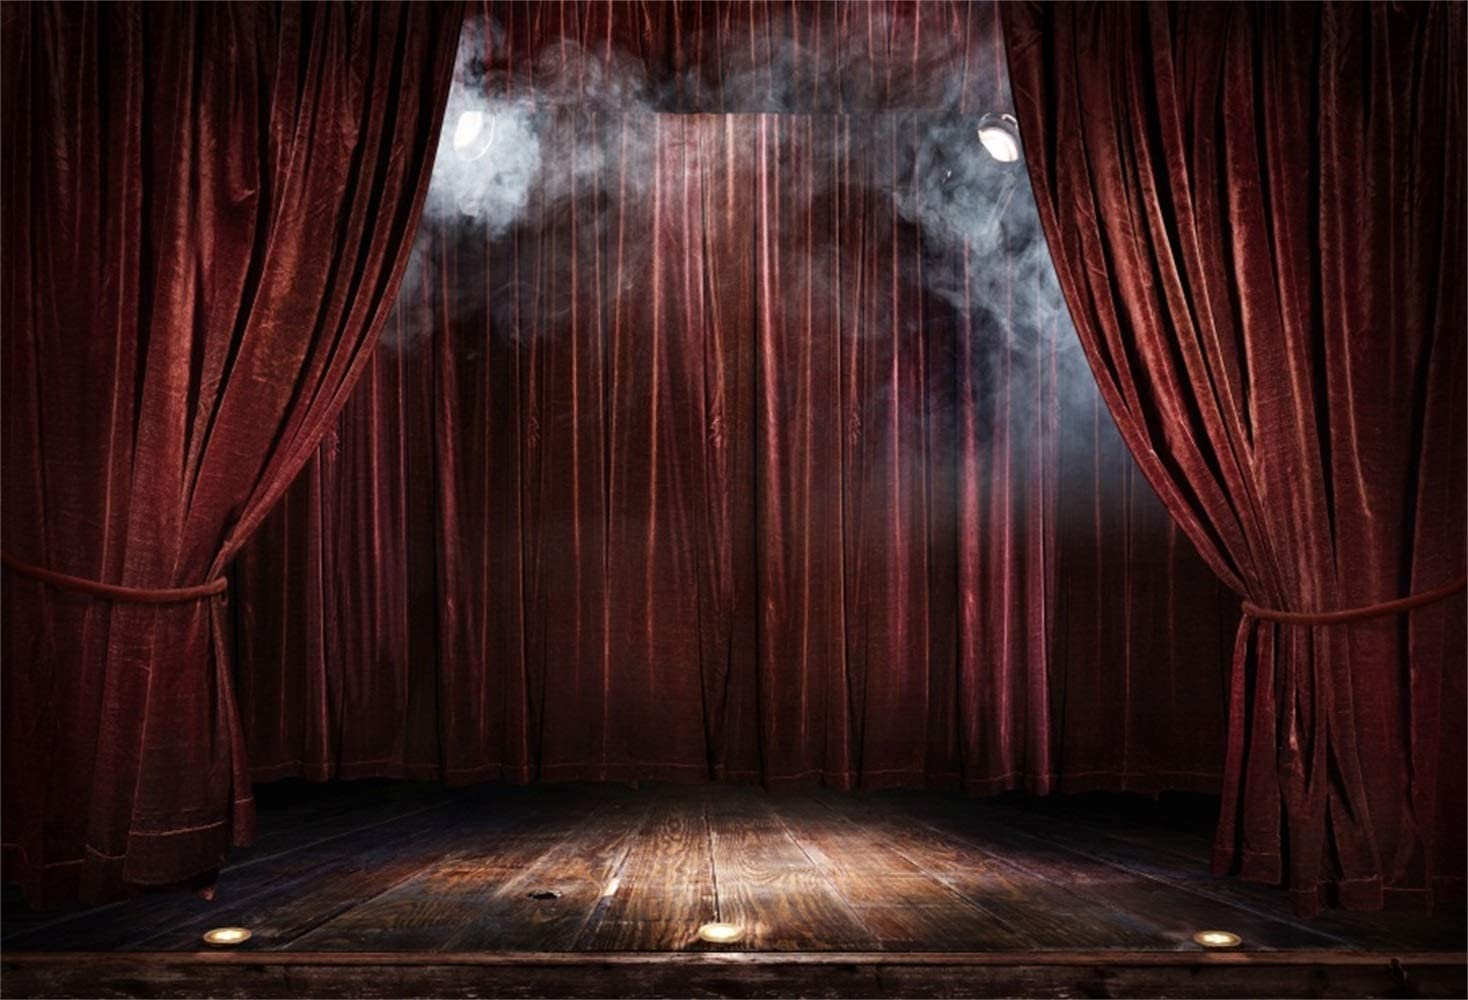 Red Curtain Stage Backdrop 10x6.5ft Polyester Shabby Foggy Performance Stage Vintage Wooden Floor Spotlight Photography Background Studio Child Adult Portrait Shoot Party Show Banner